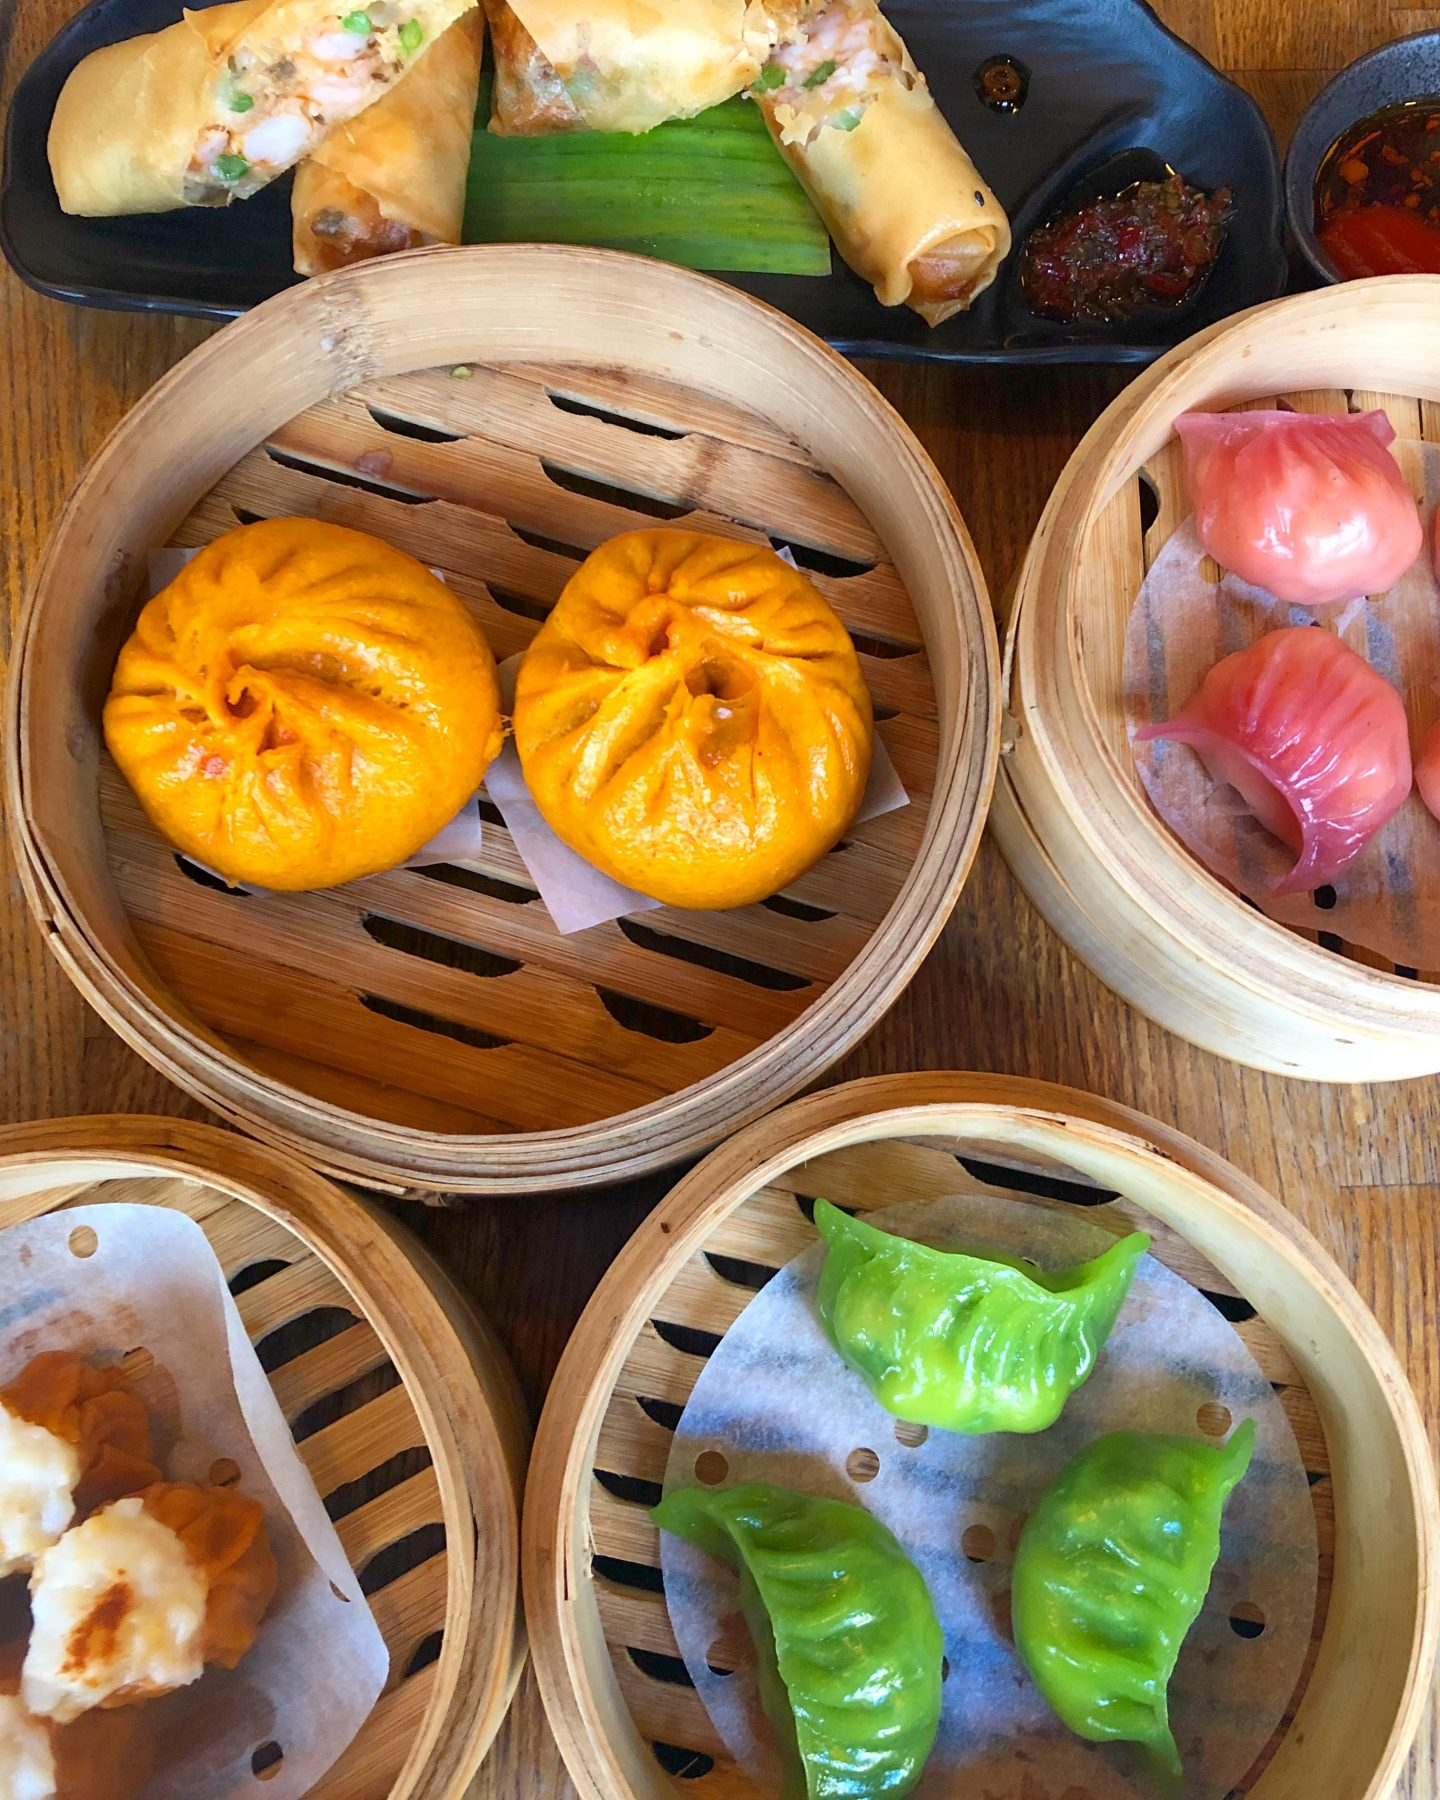 5 places to eat Dumplings in London